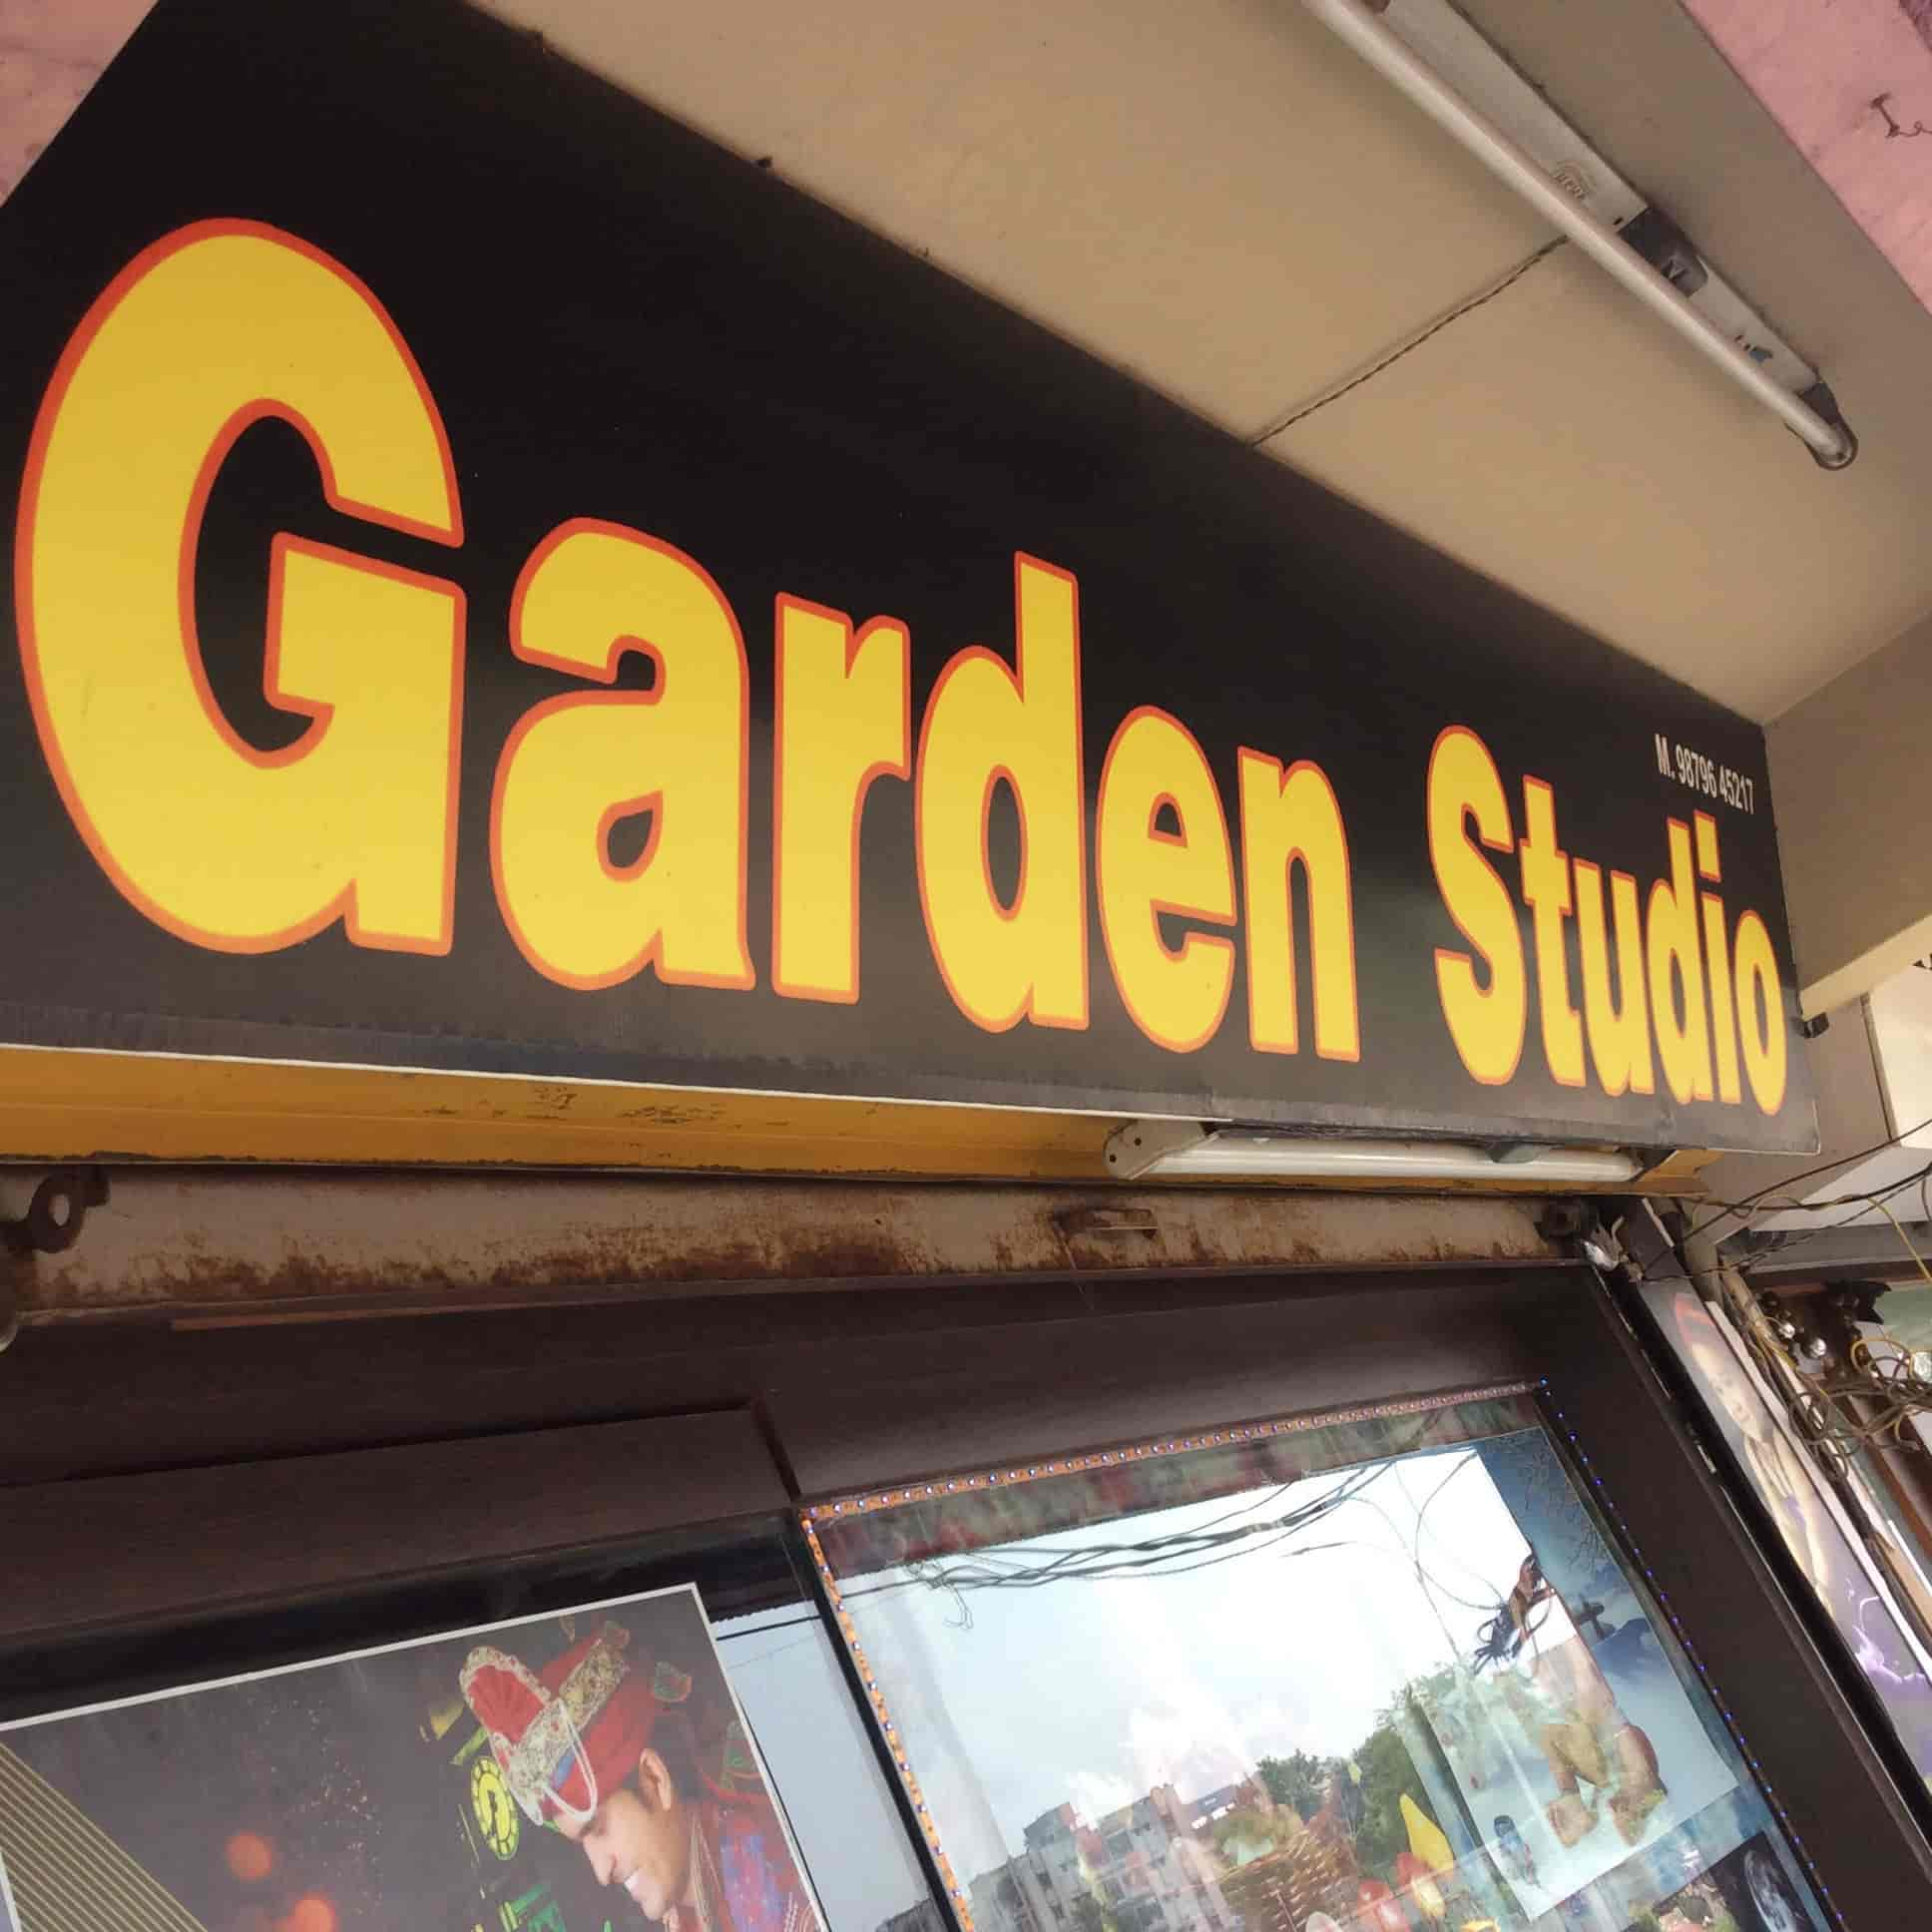 Garden Digital Studio Photos, Althan, Surat- Pictures & Images ...